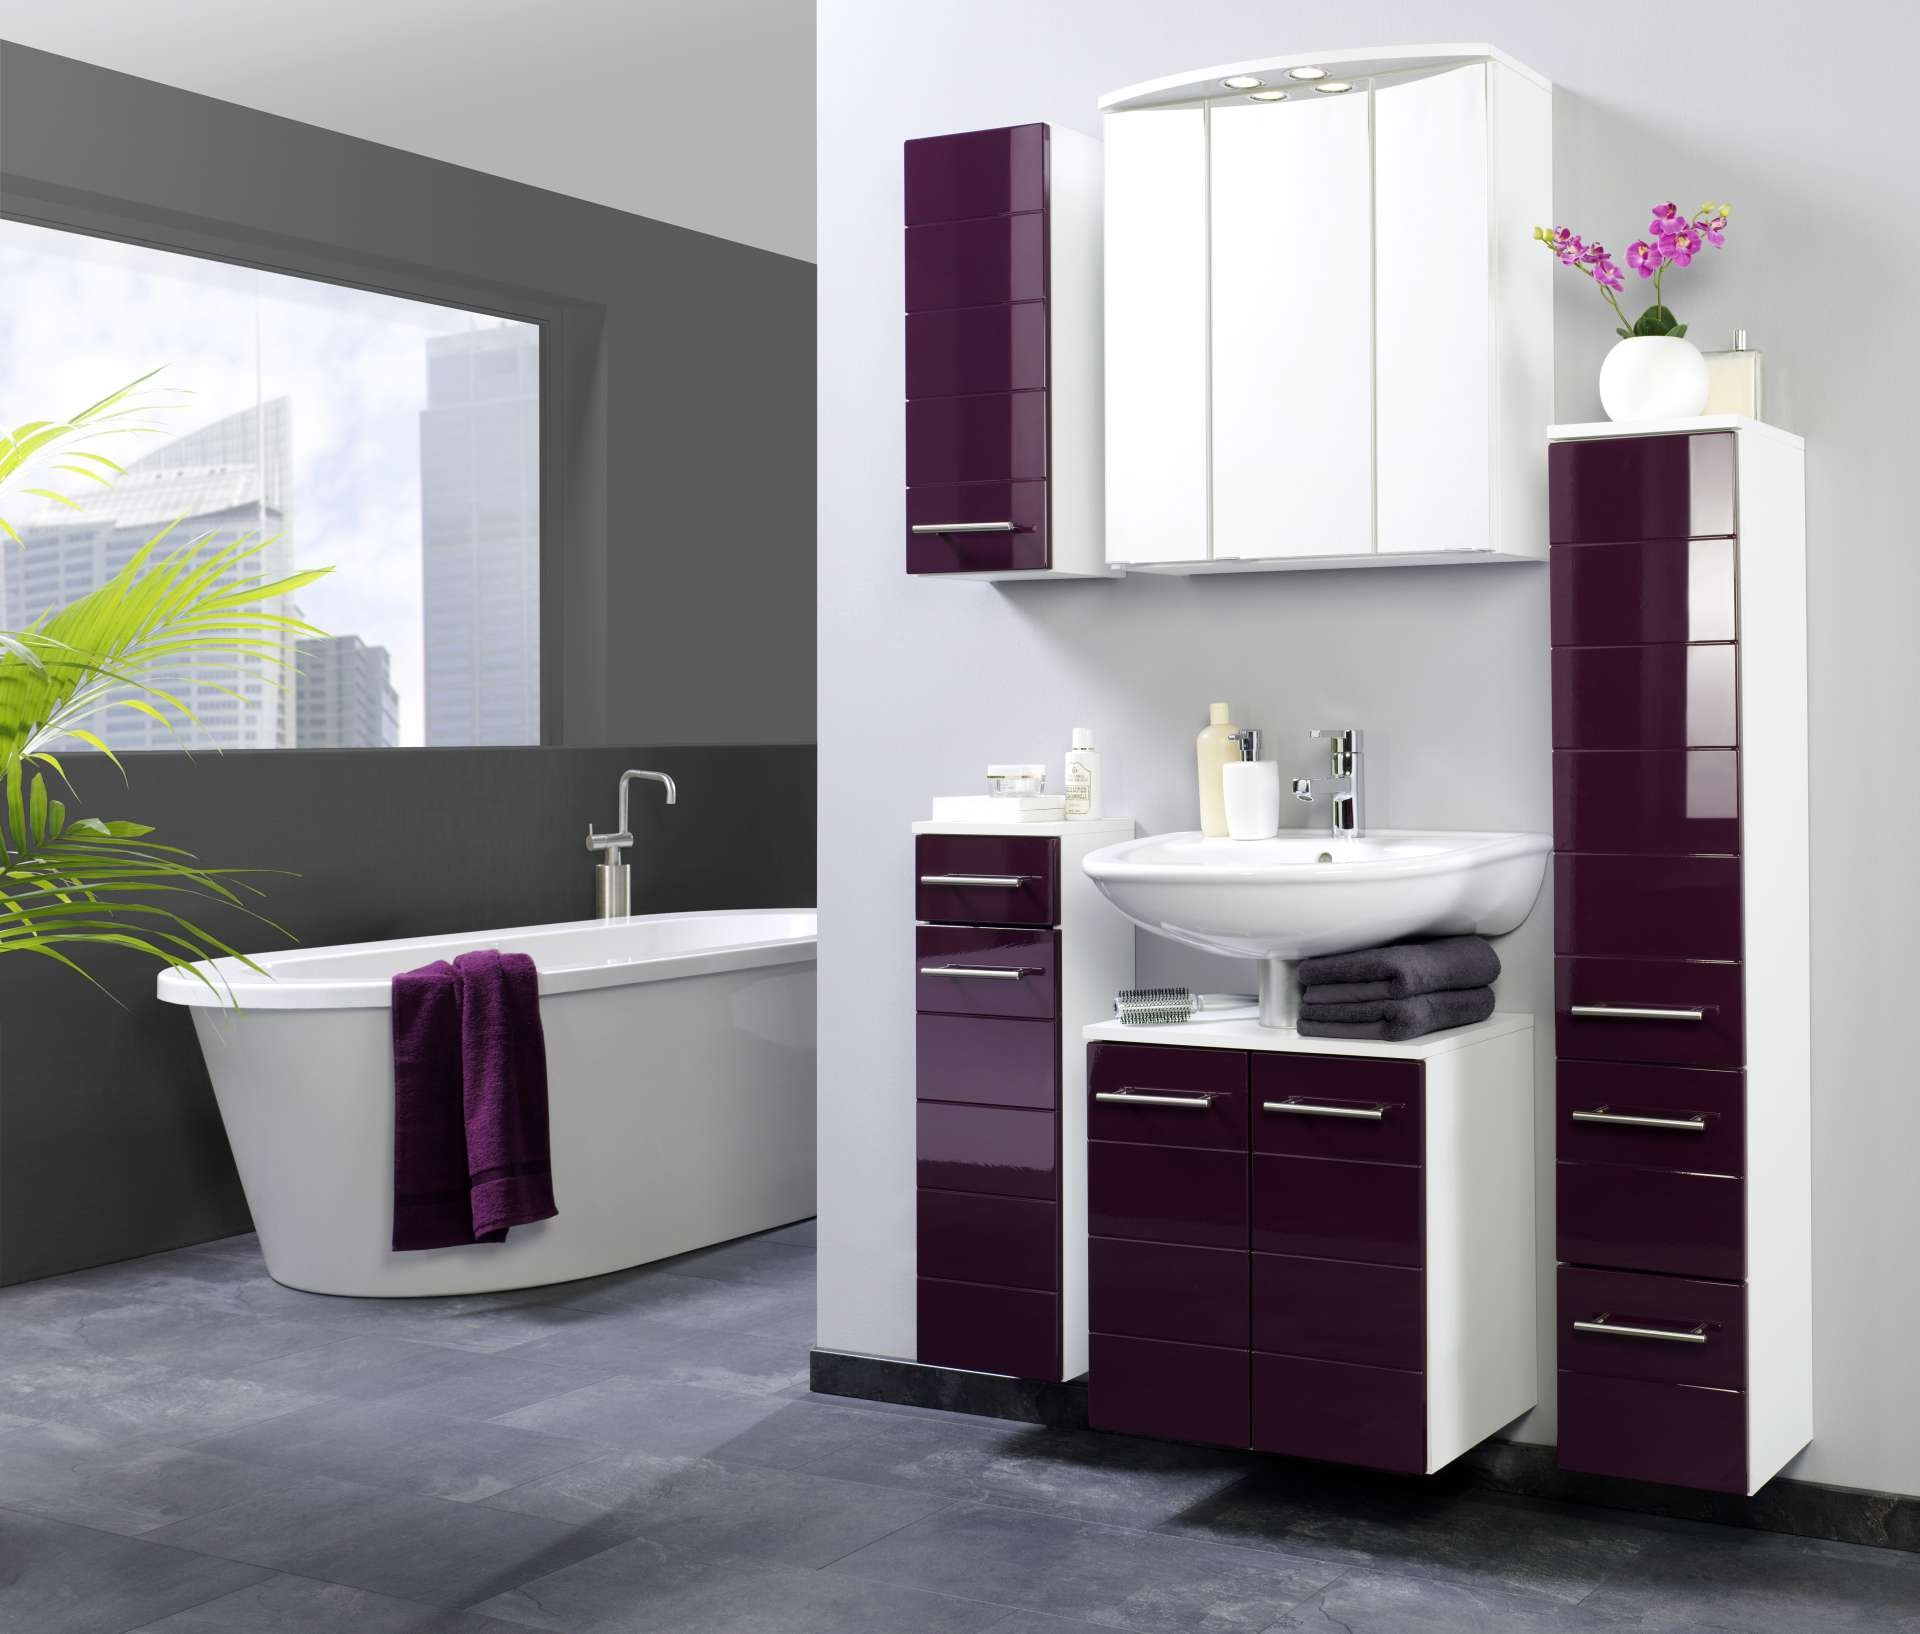 bad unterschrank rimini 1 t rig 1 schublade 25 cm breit hochglanz aubergine bad bad. Black Bedroom Furniture Sets. Home Design Ideas